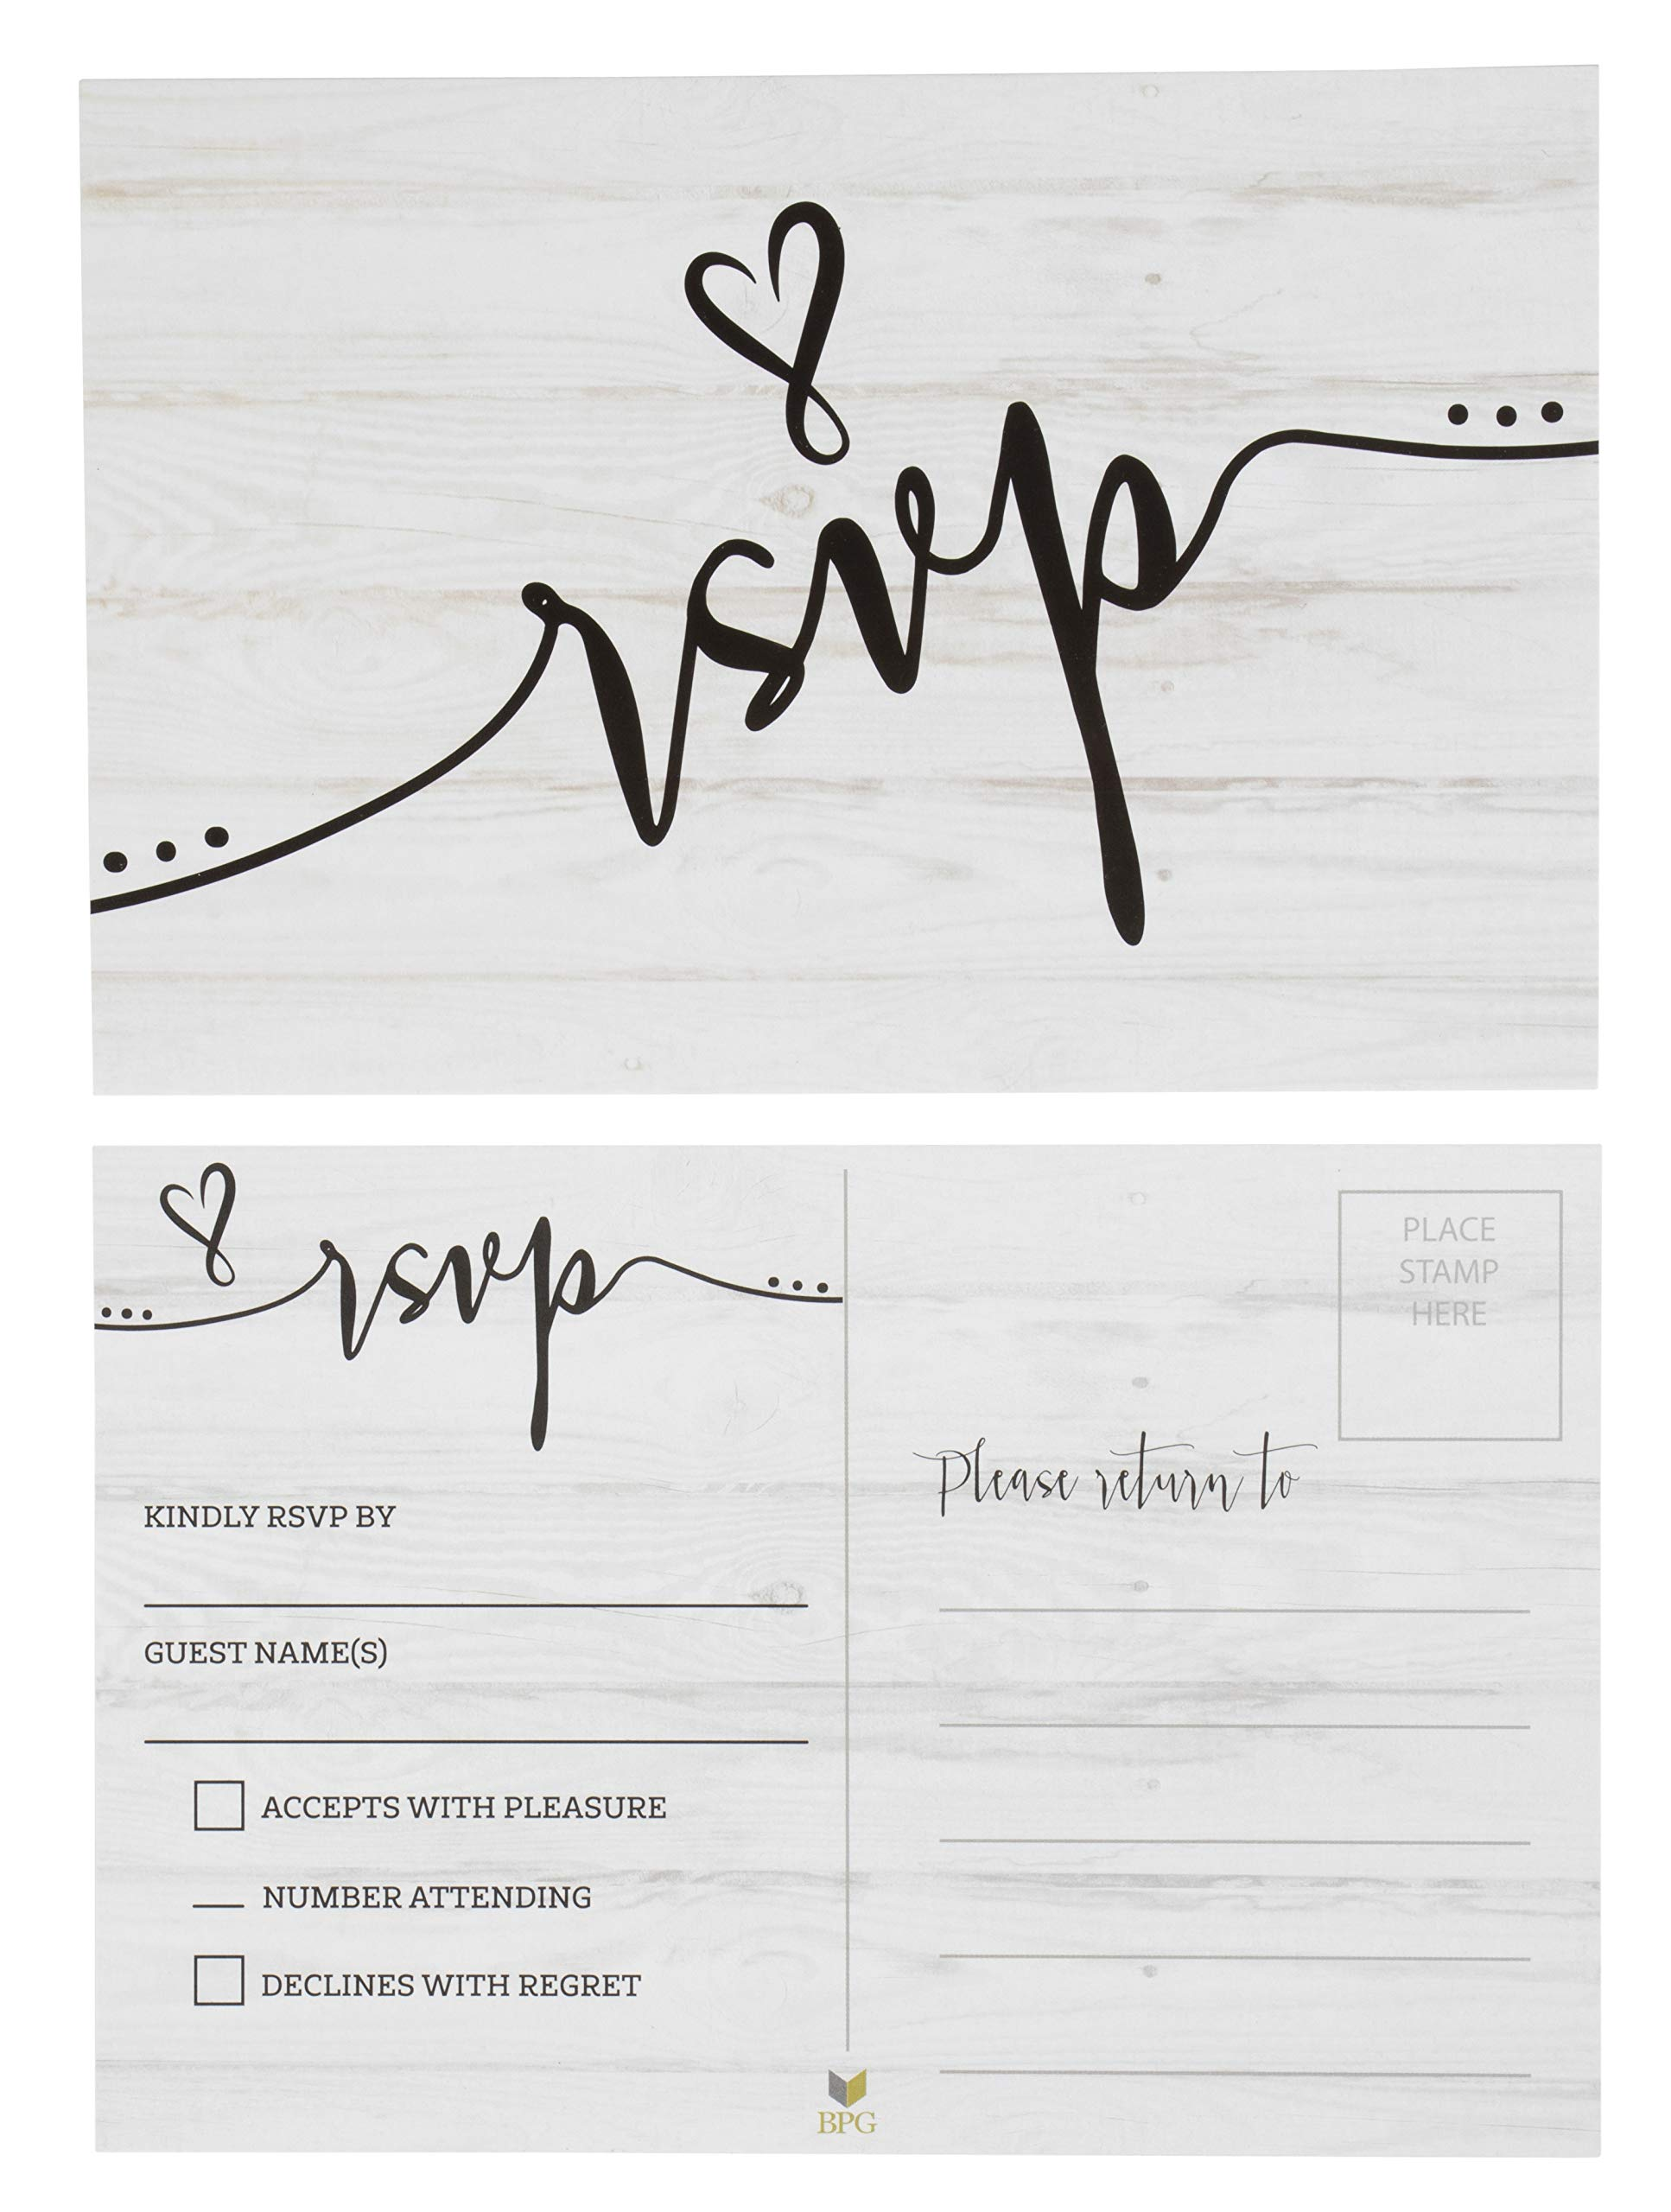 RSVP Cards - 60-Pack RVSP Postcards, Response Return Card for Wedding, Rehearsal Dinner, Baby Shower, Bridal Shower, Birthday Party Invitation, No Envelopes Needed, Rustic Wedding Themed, 4 x 6 Inches